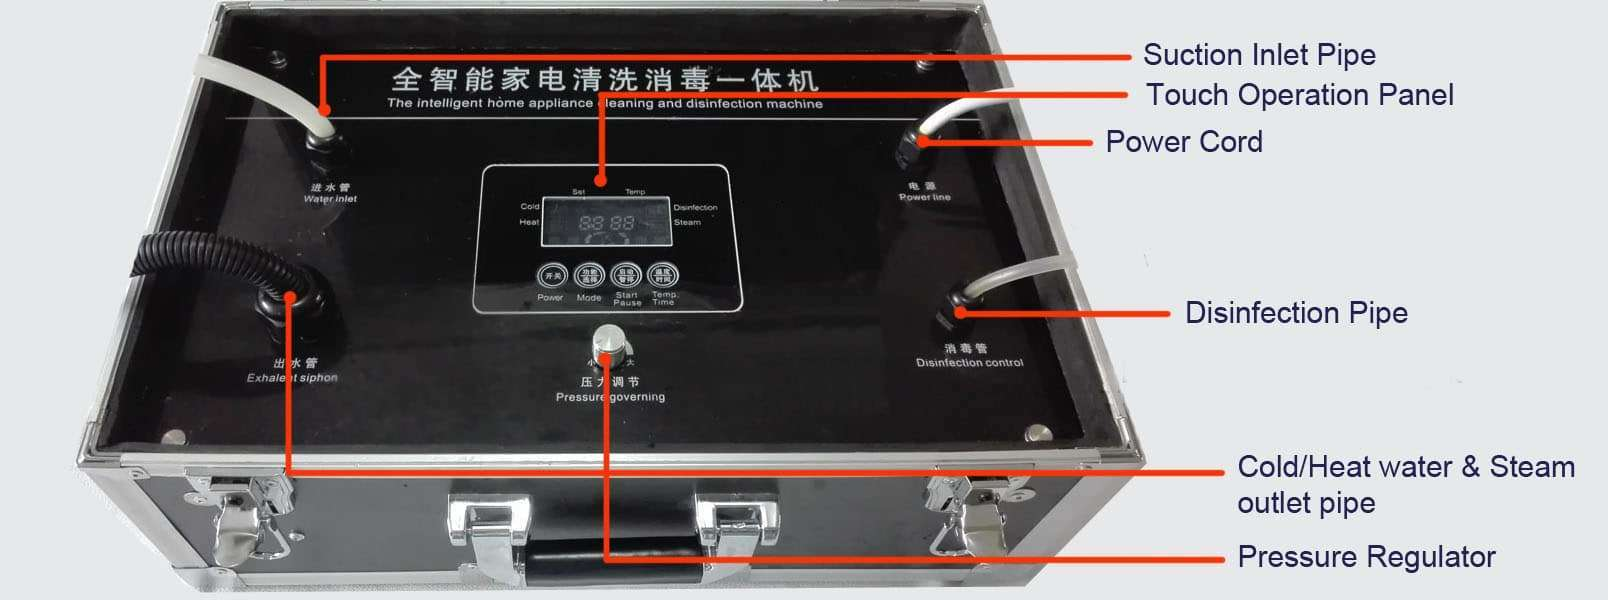 multifunction-deeply cleaning-machine-operation-panel